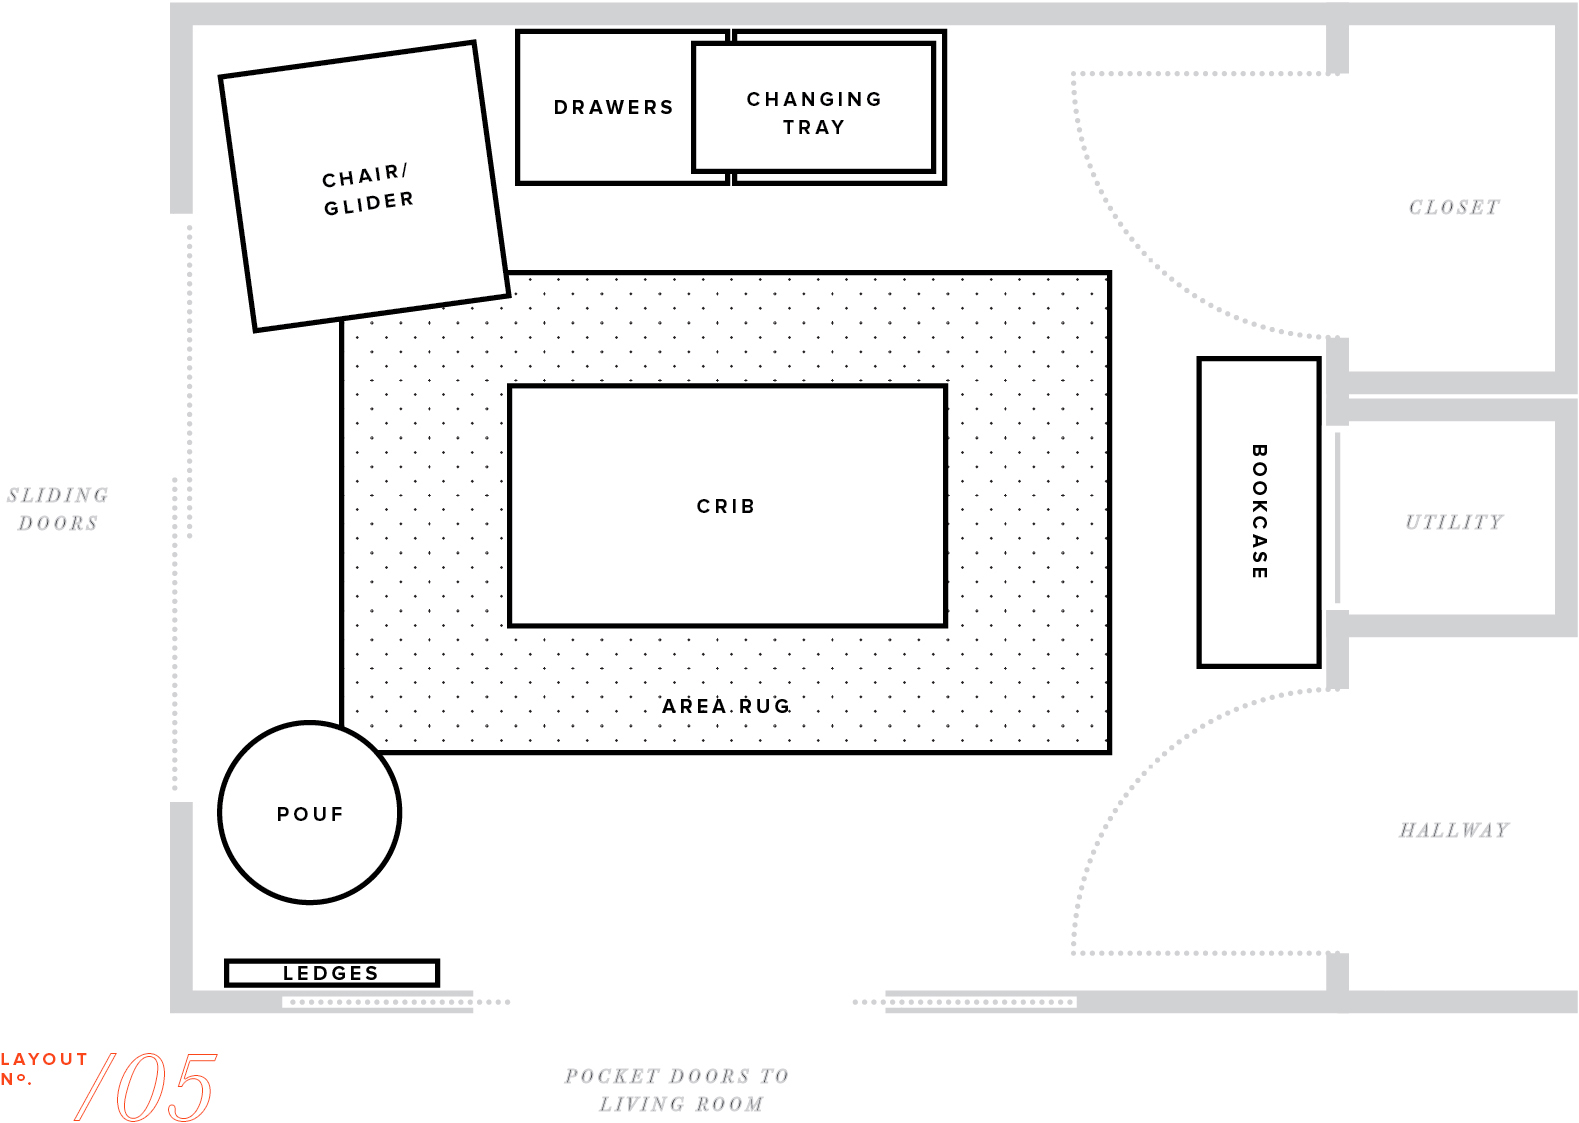 plan furniture layout. previouspausenext plan furniture layout r